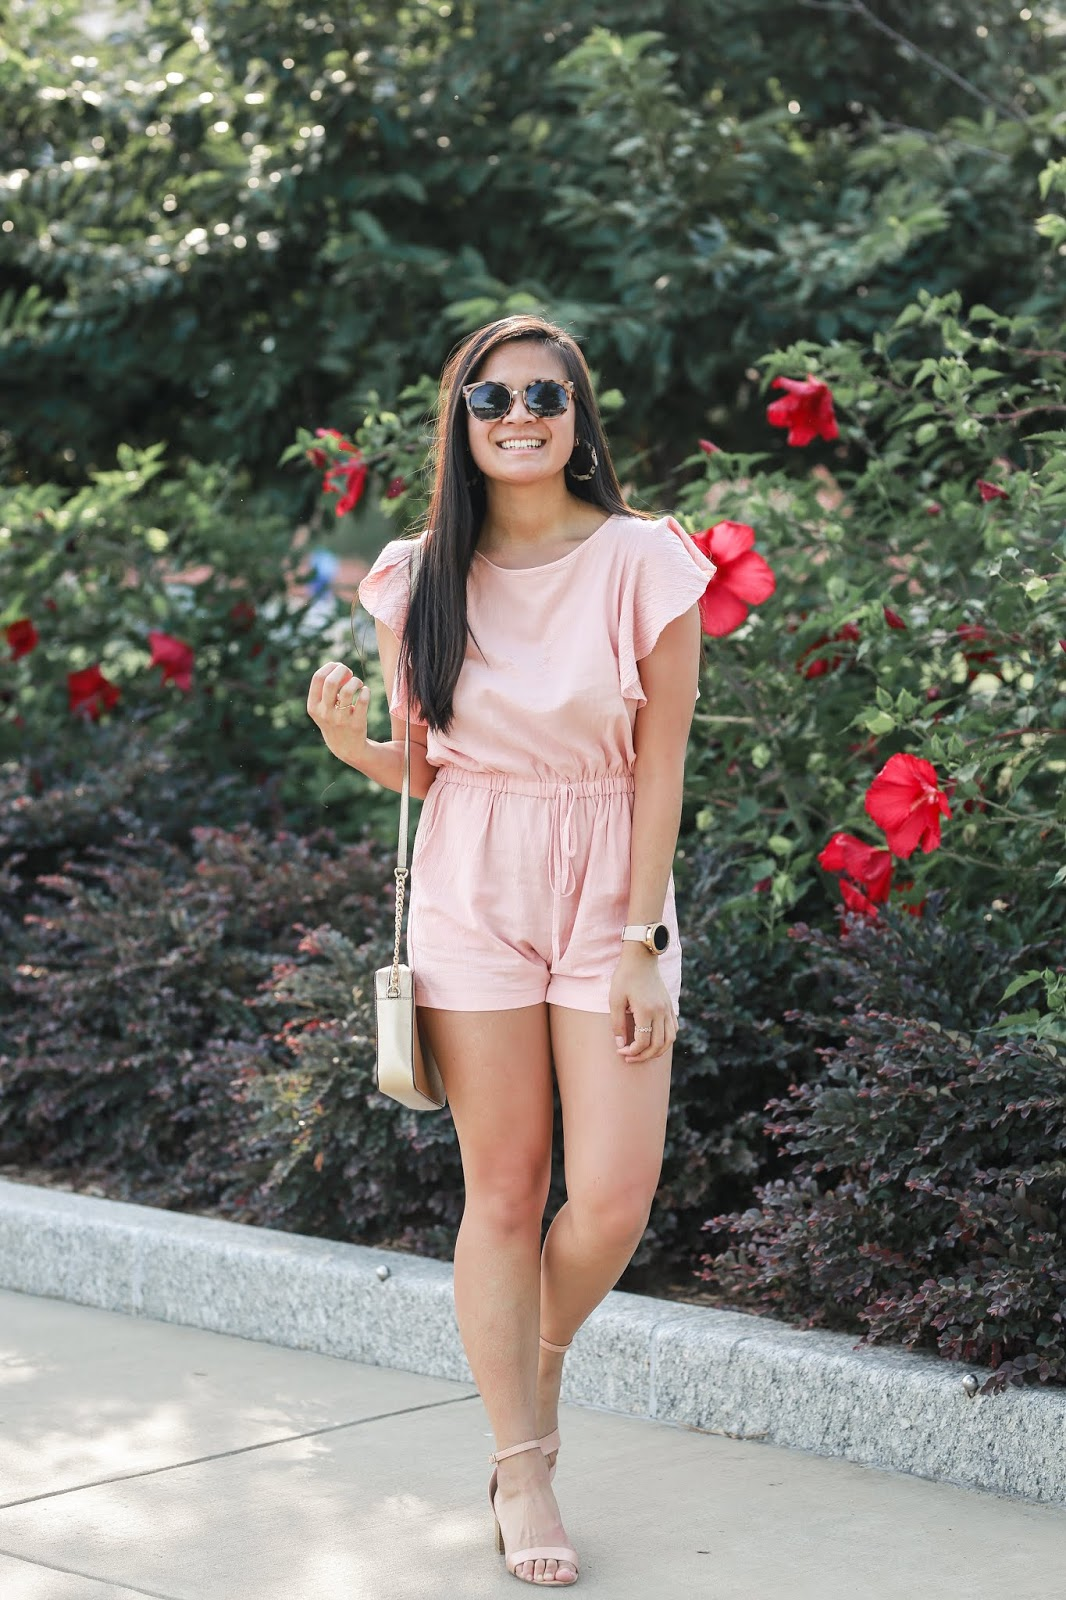 Blush Pink Ruffle Sleeved Romper - Amazon Prime Fashion Find